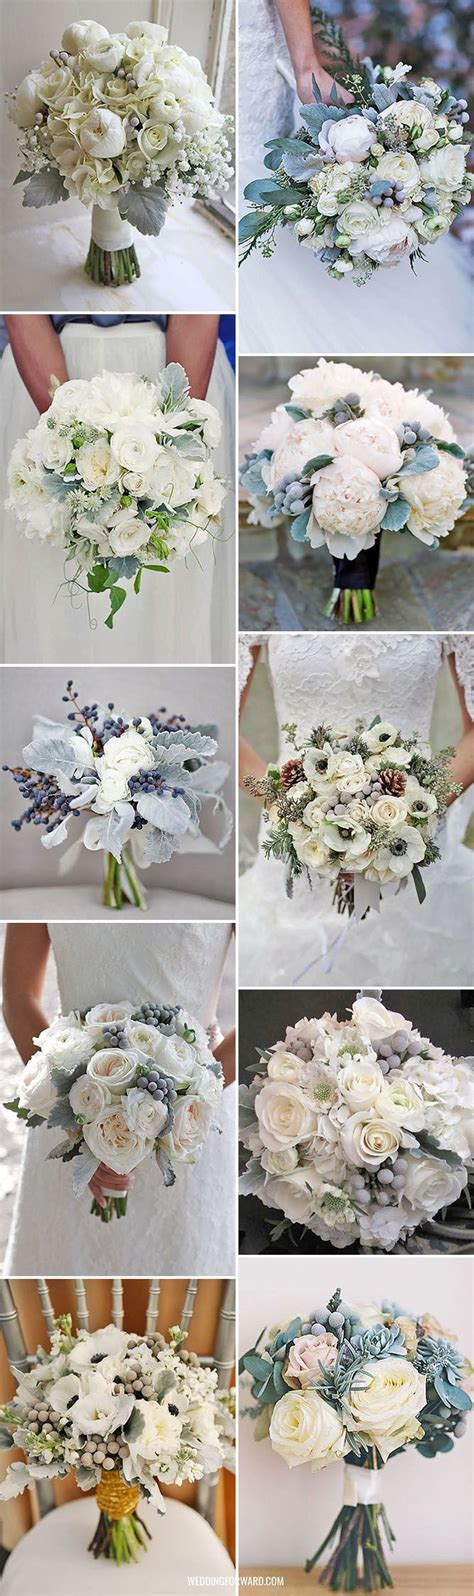 1000+ Images About Wedding Bouquets On Pinterest Wedding